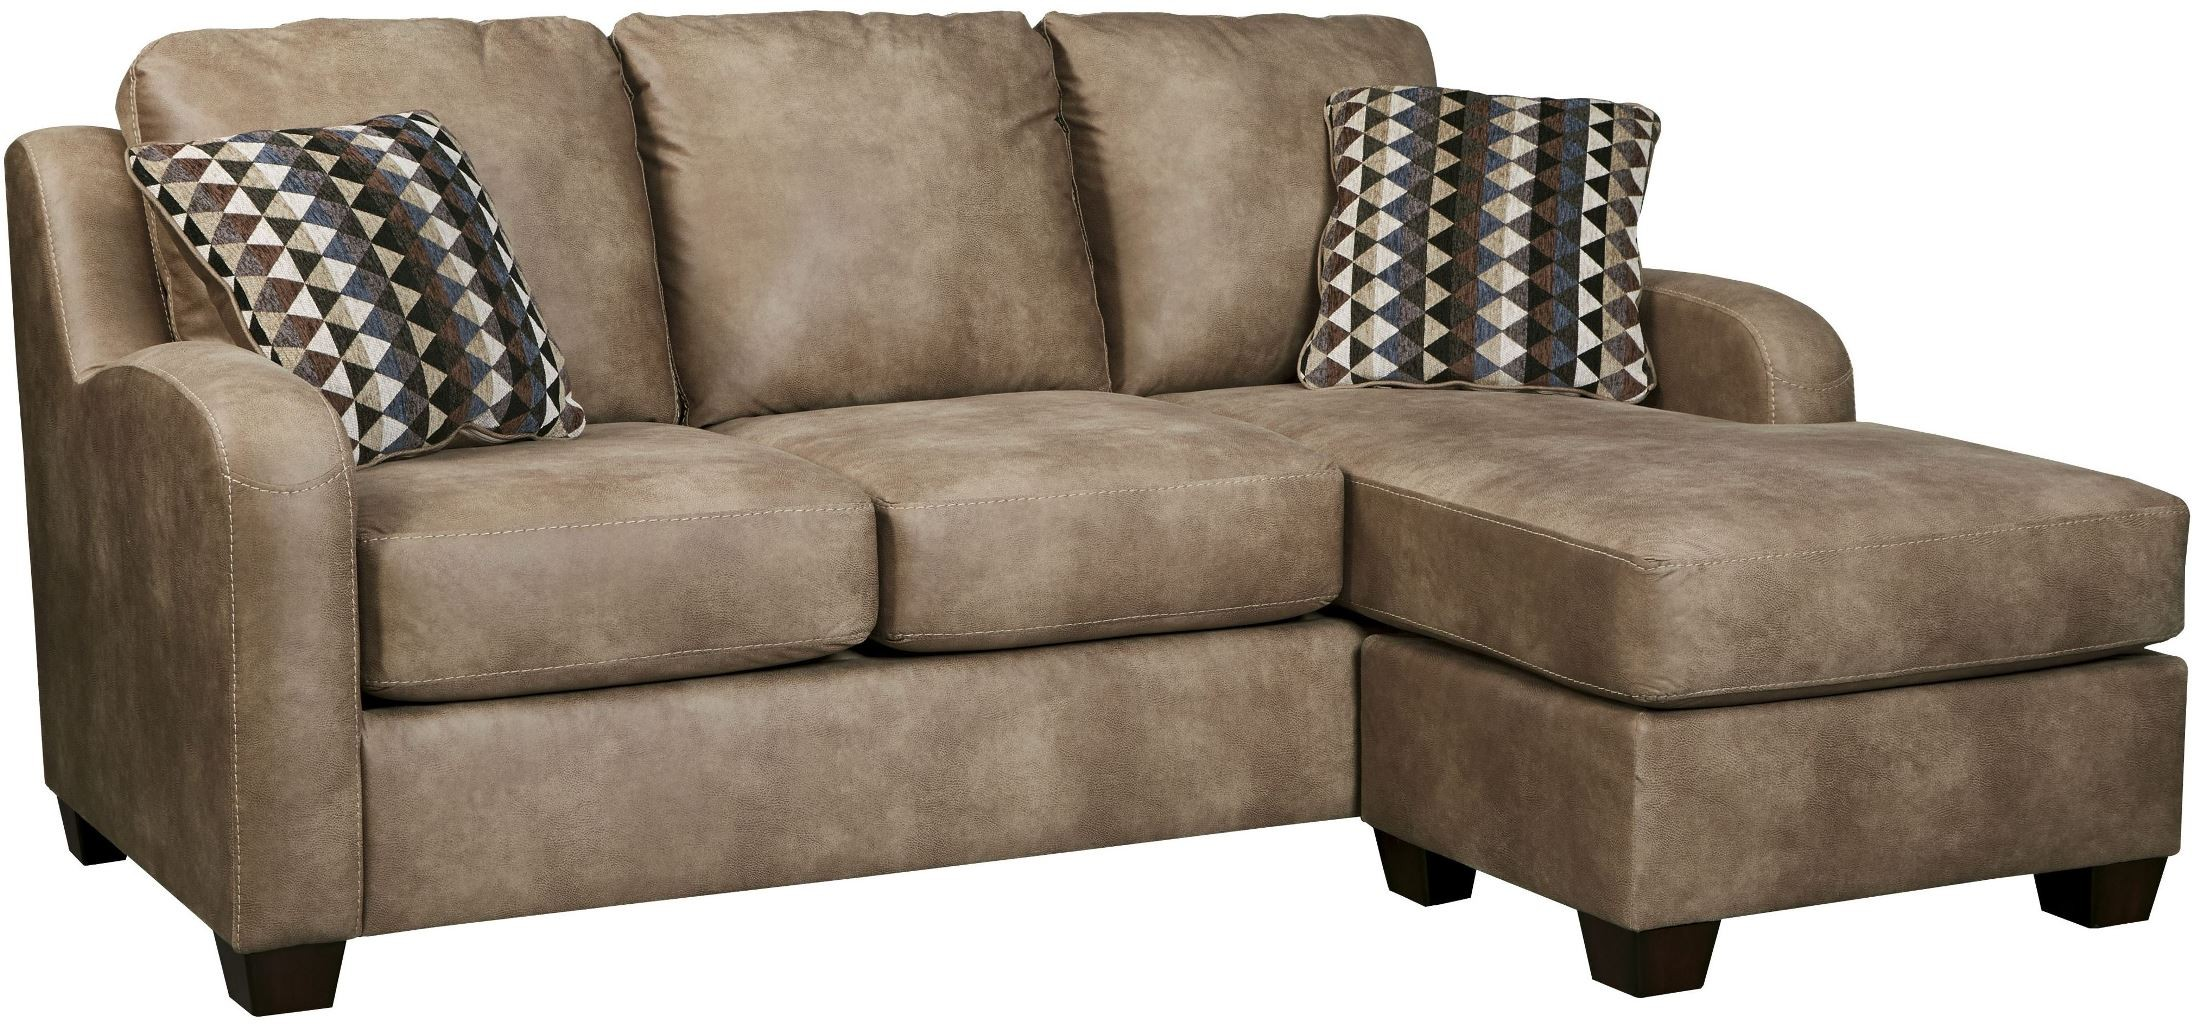 Alturo dune sofa chaise from ashley 6000318 coleman for Ashley chaise sectional